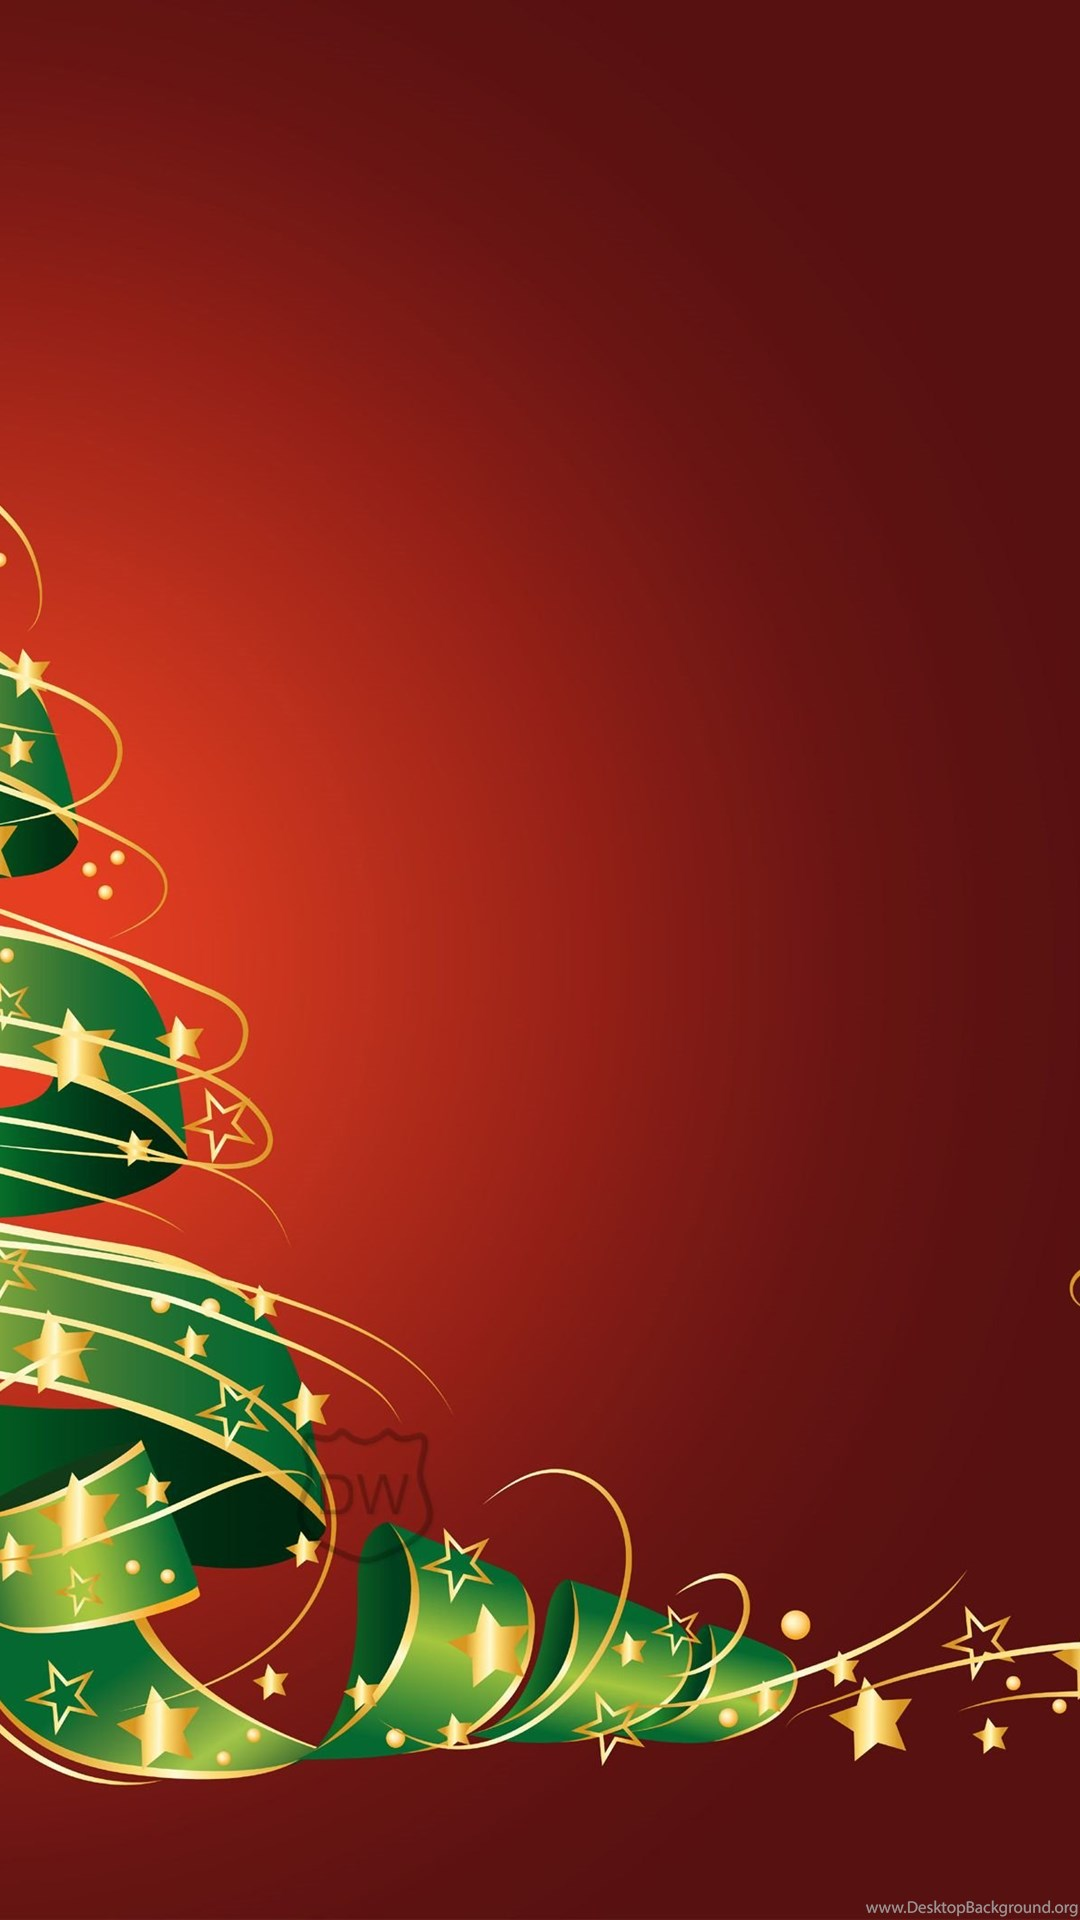 Merry Christmas Red Backgrounds Wallpapers Free Desktop Background